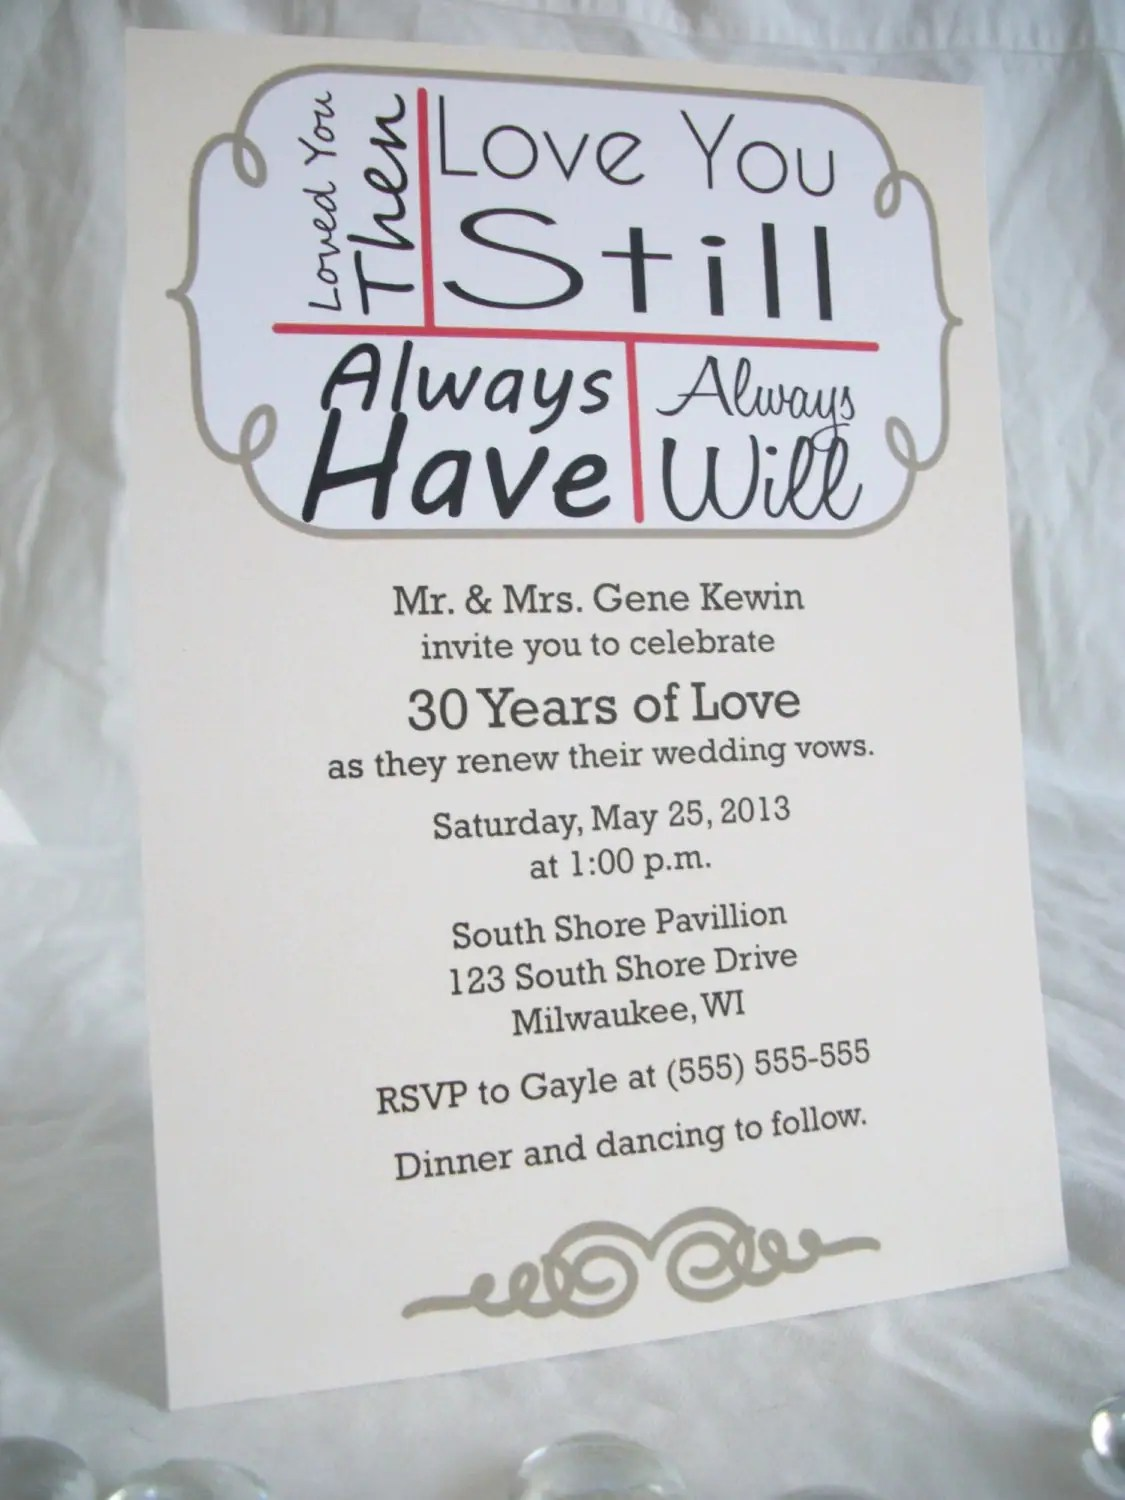 24 love you still vow renewal invitations onepaperheart